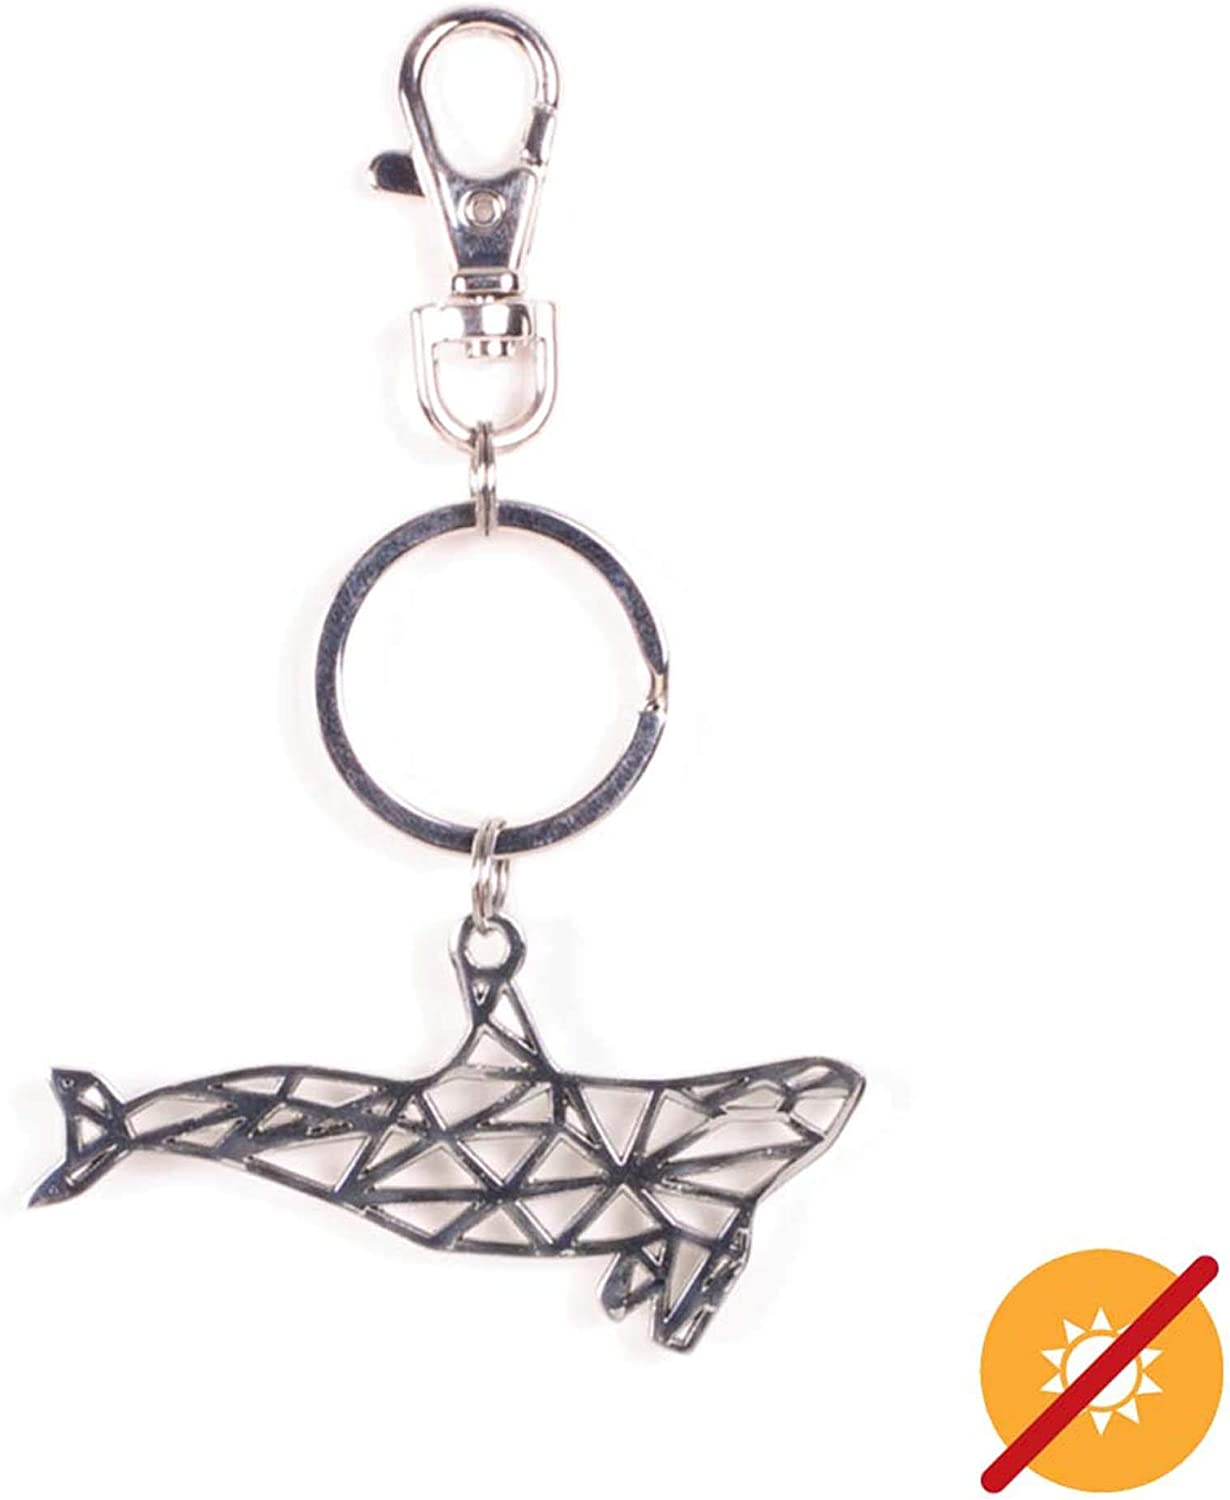 2 wide Changes Color in the Sun Made from Zinc Alloy Rust resistant Del Sol Color-Changing Key Chain